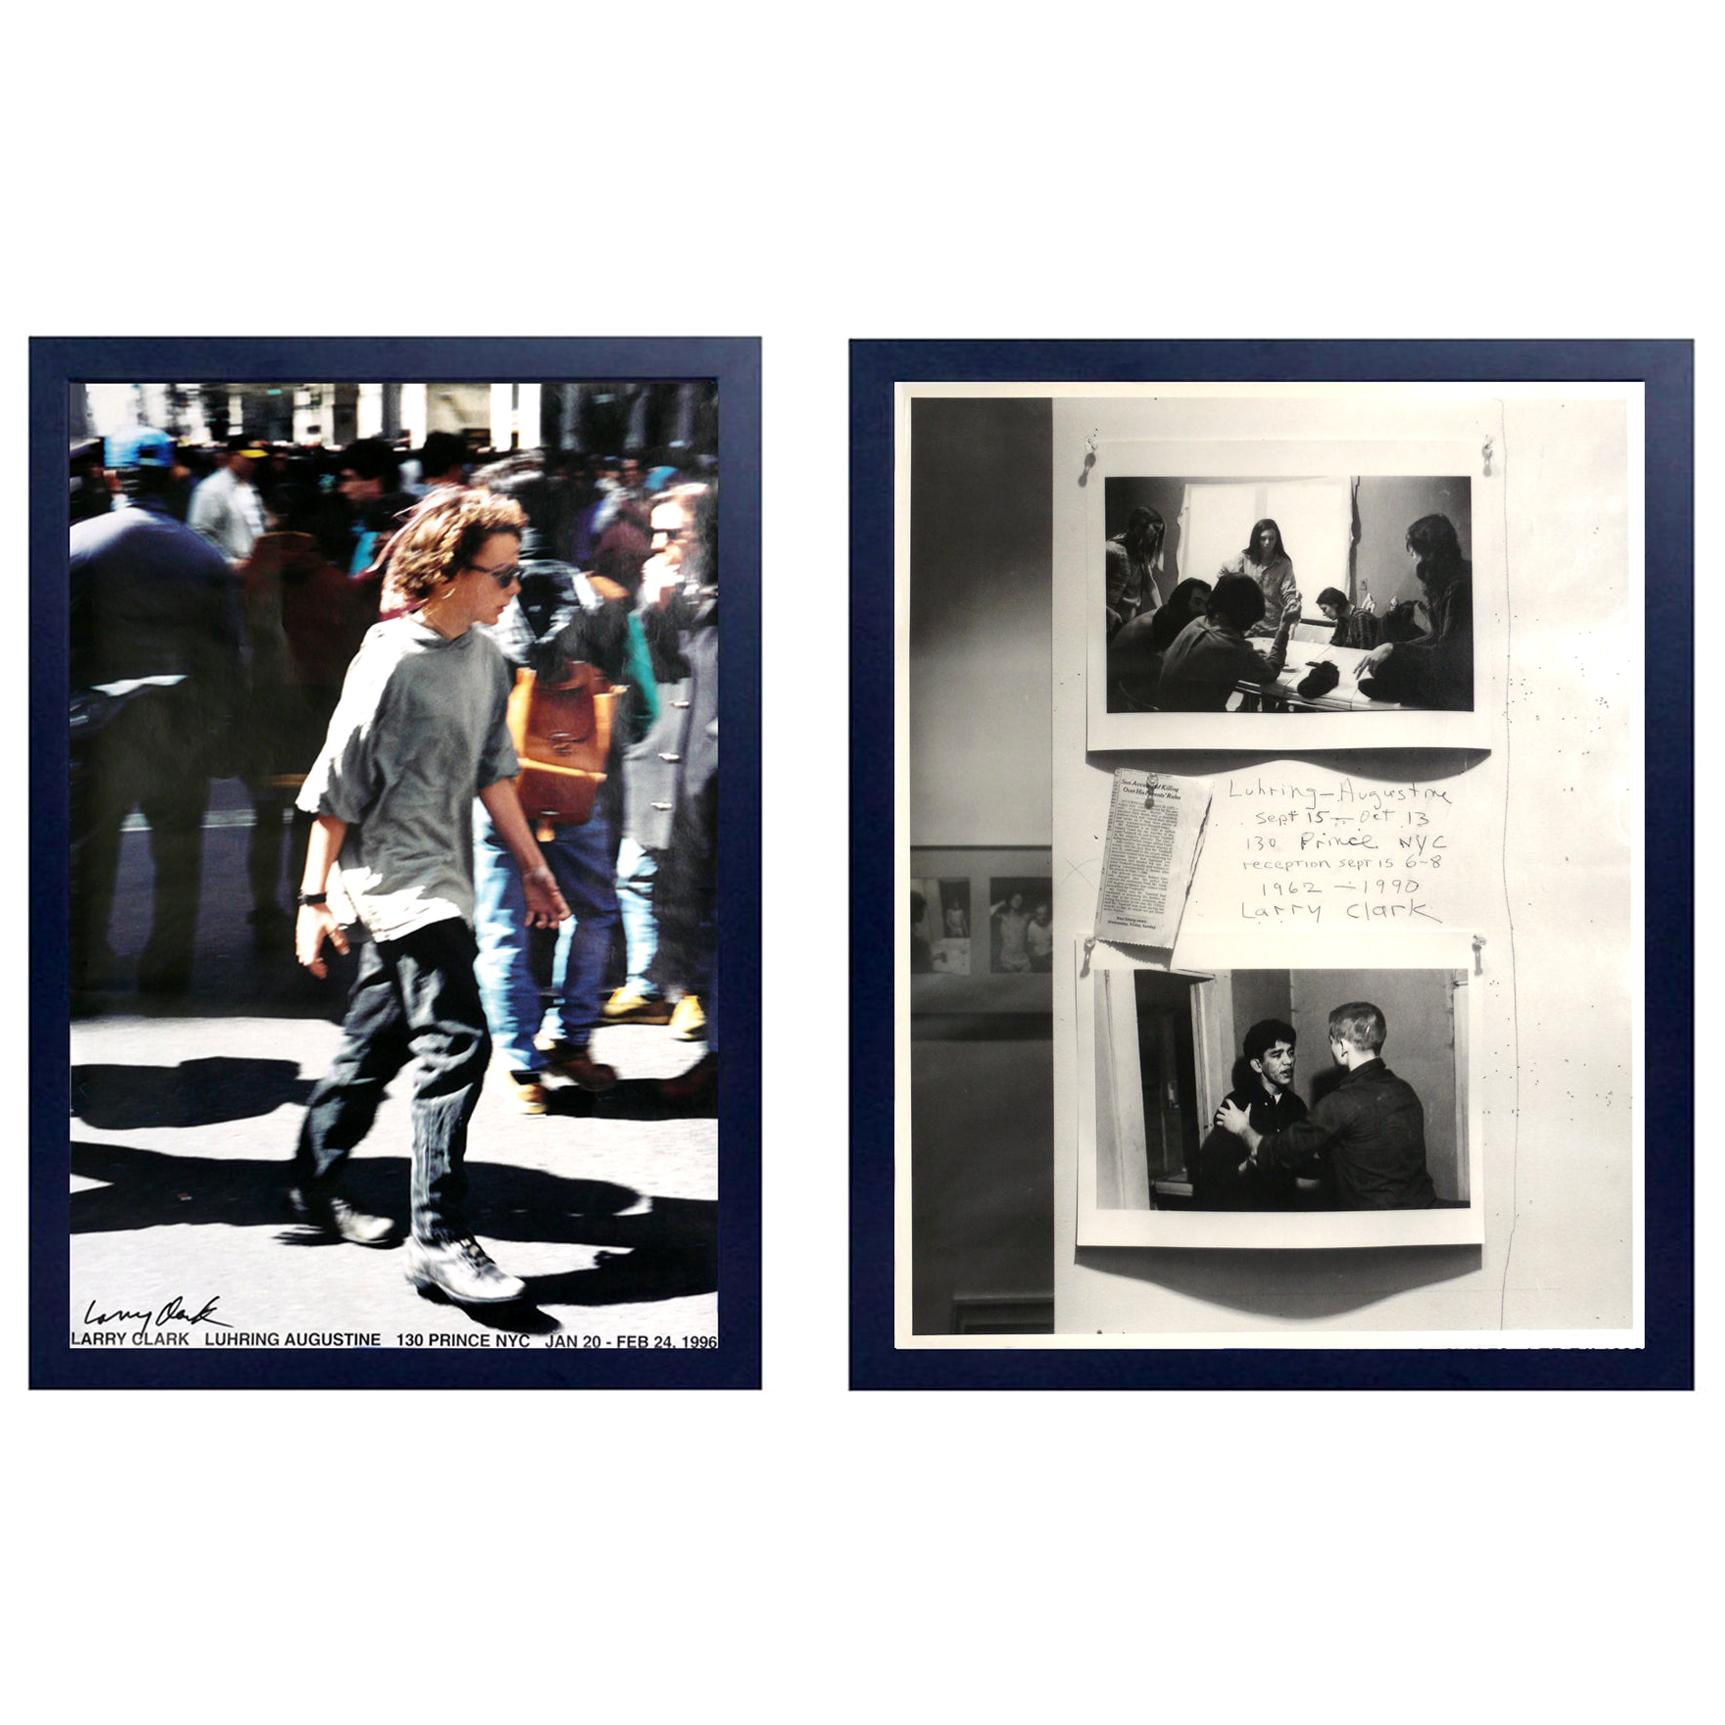 Larry Clark Signed Gallery Exhibition Offset Lithograph Posters